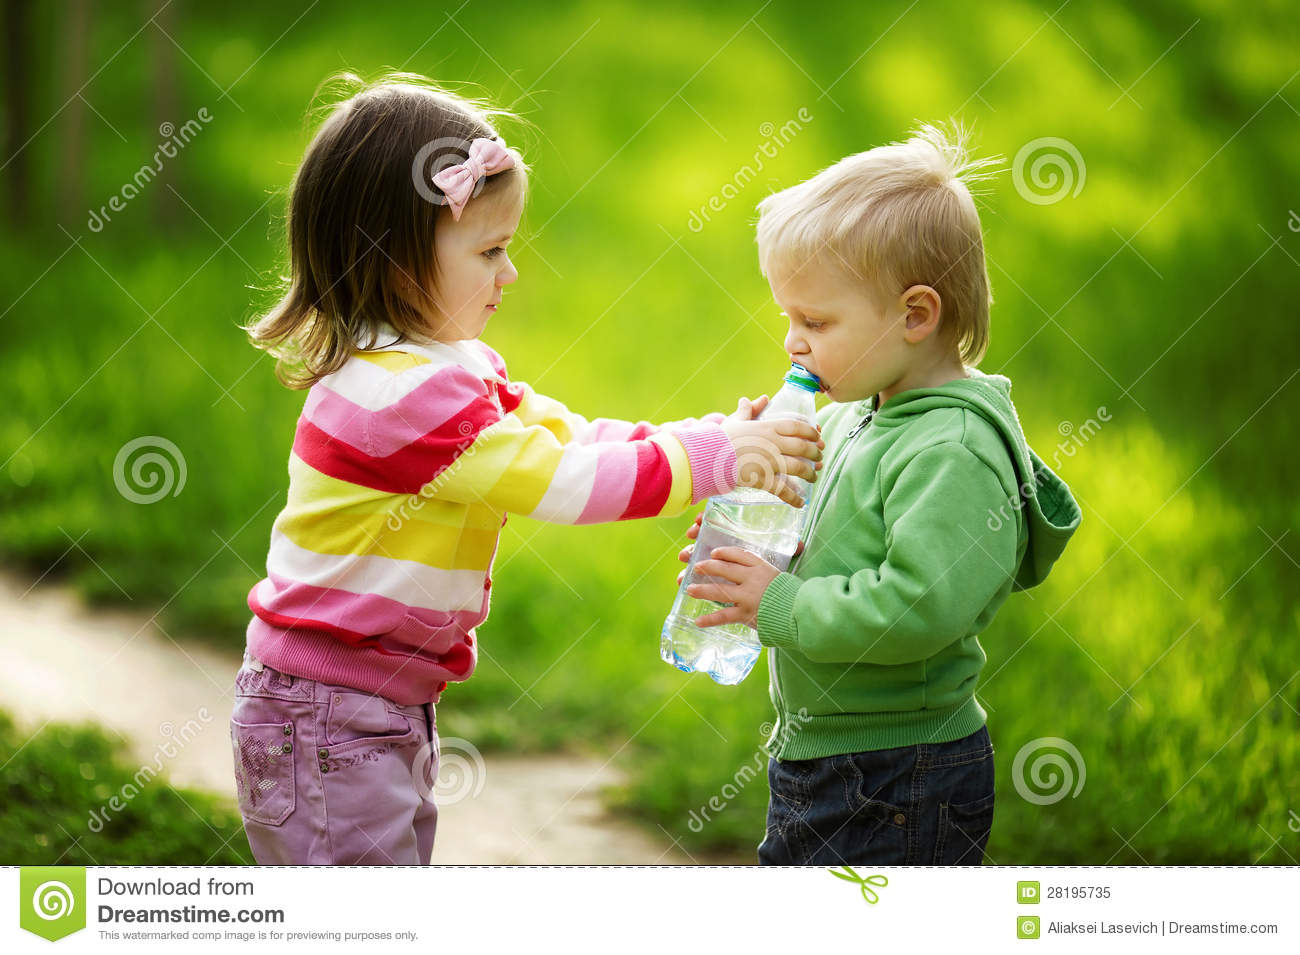 Sharing A Bottle Of Water Stock Image.